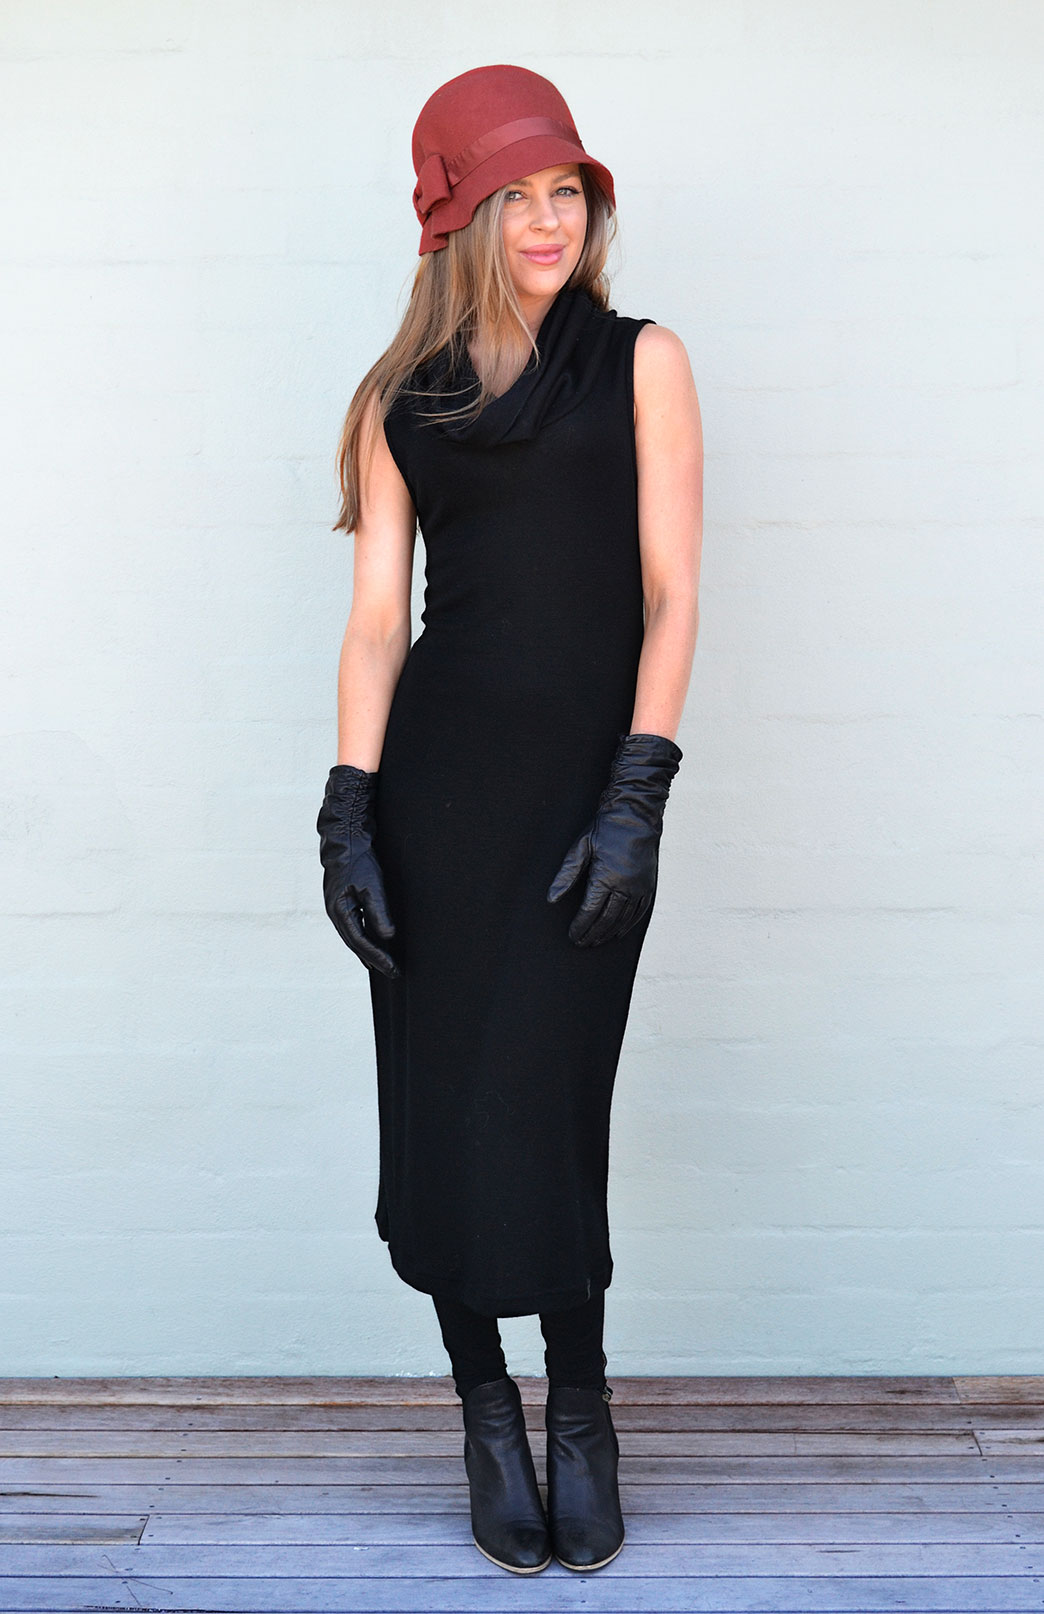 Cowl Neck Midi Dress - Women's Black Sleeveless Heavyweight Merino Cowl Neck Midi Dress for Winter - Smitten Merino Tasmania Australia